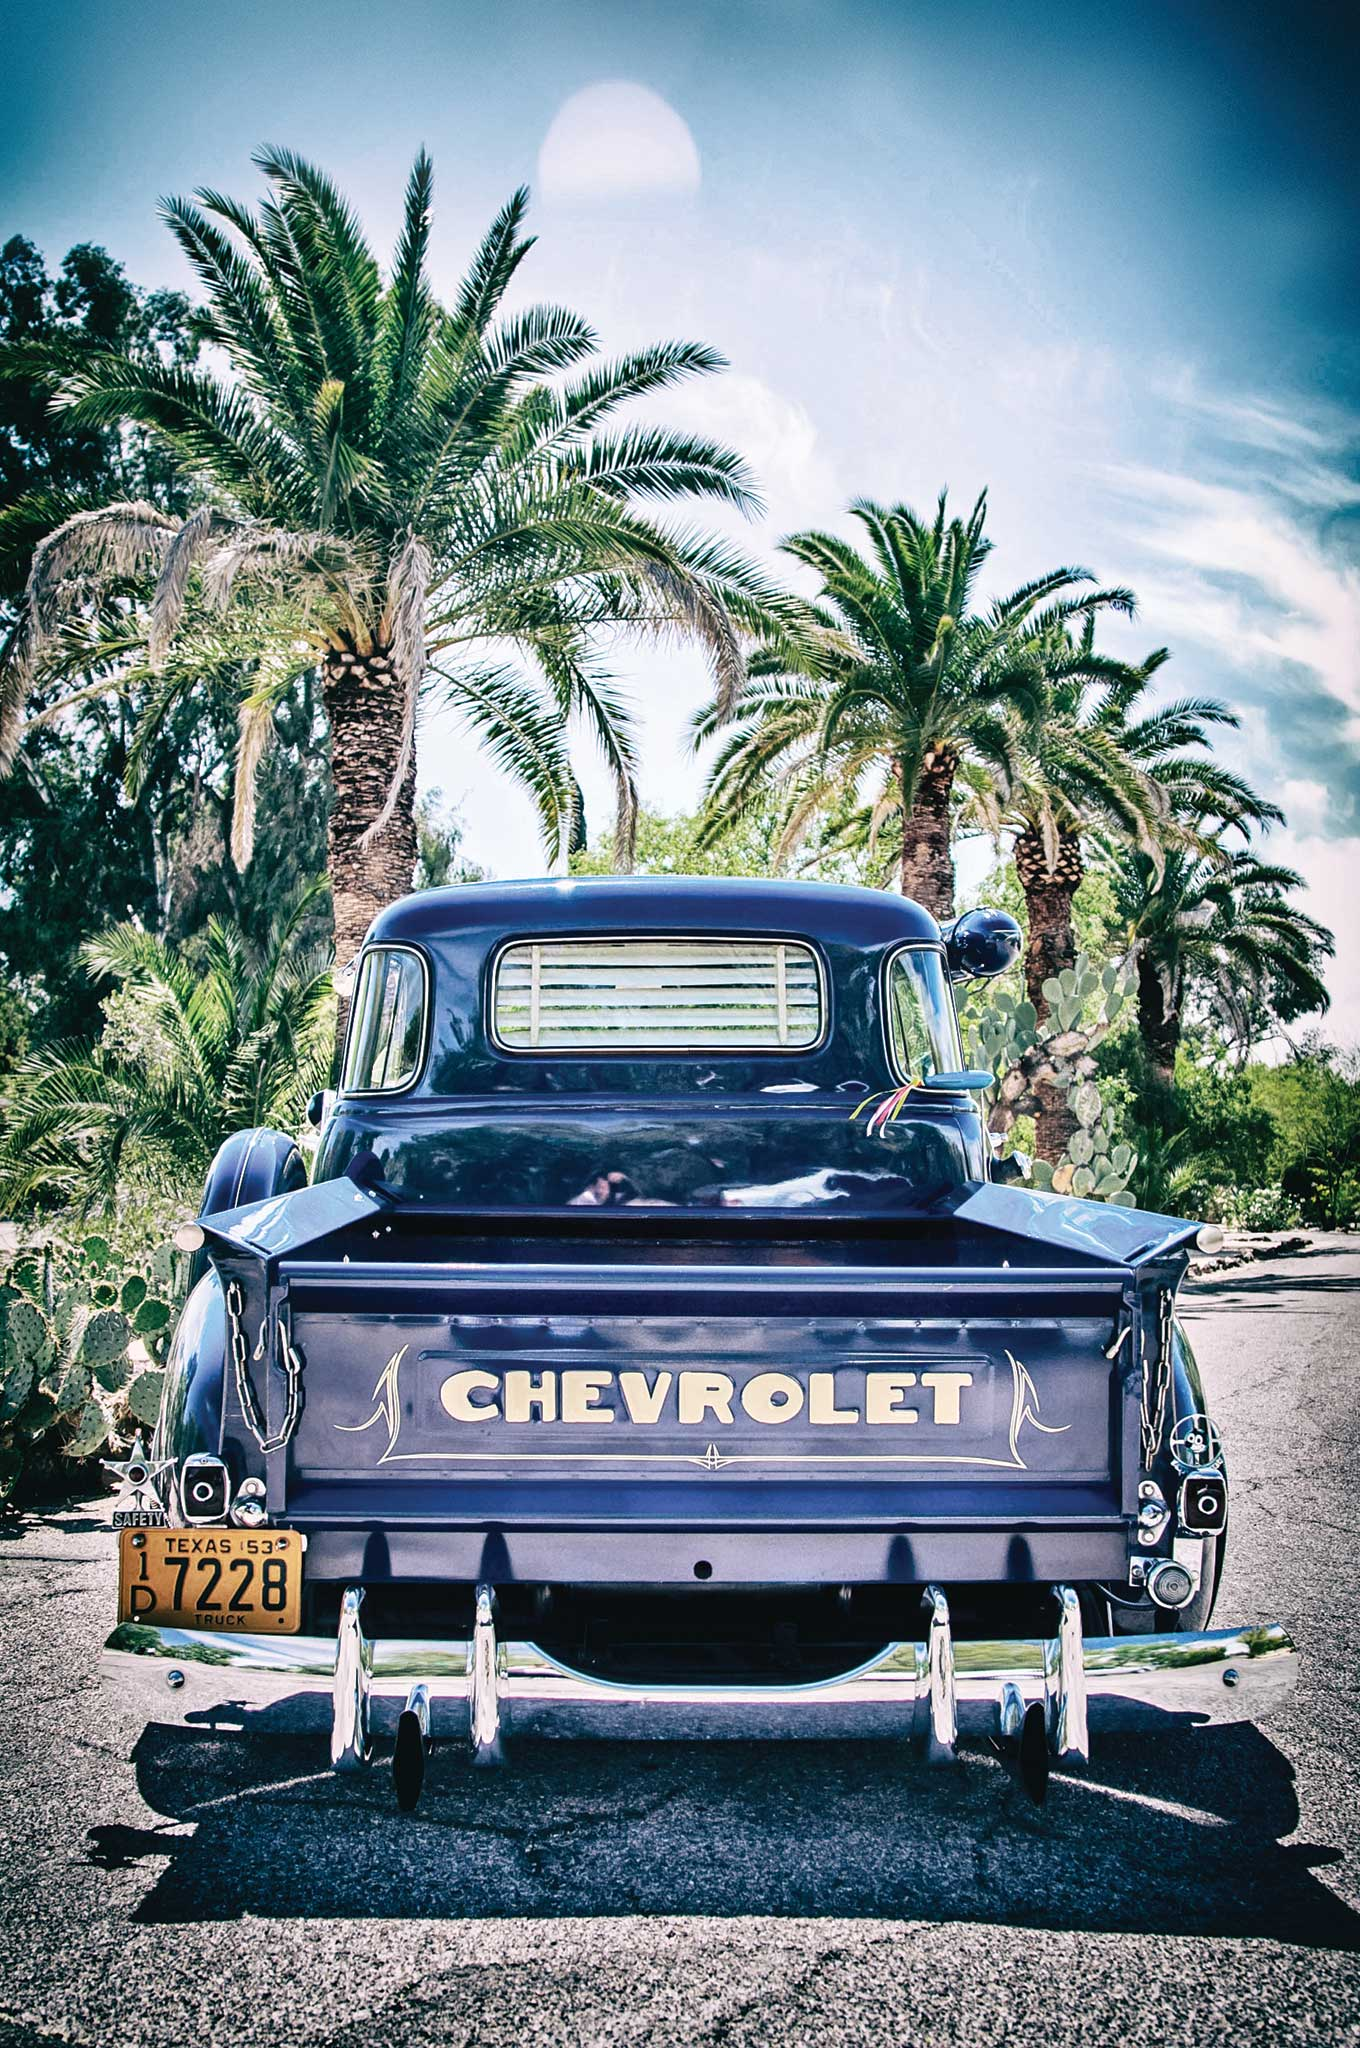 1953 Chevrolet 235 Pickup - Truck of the Month - Lowrider